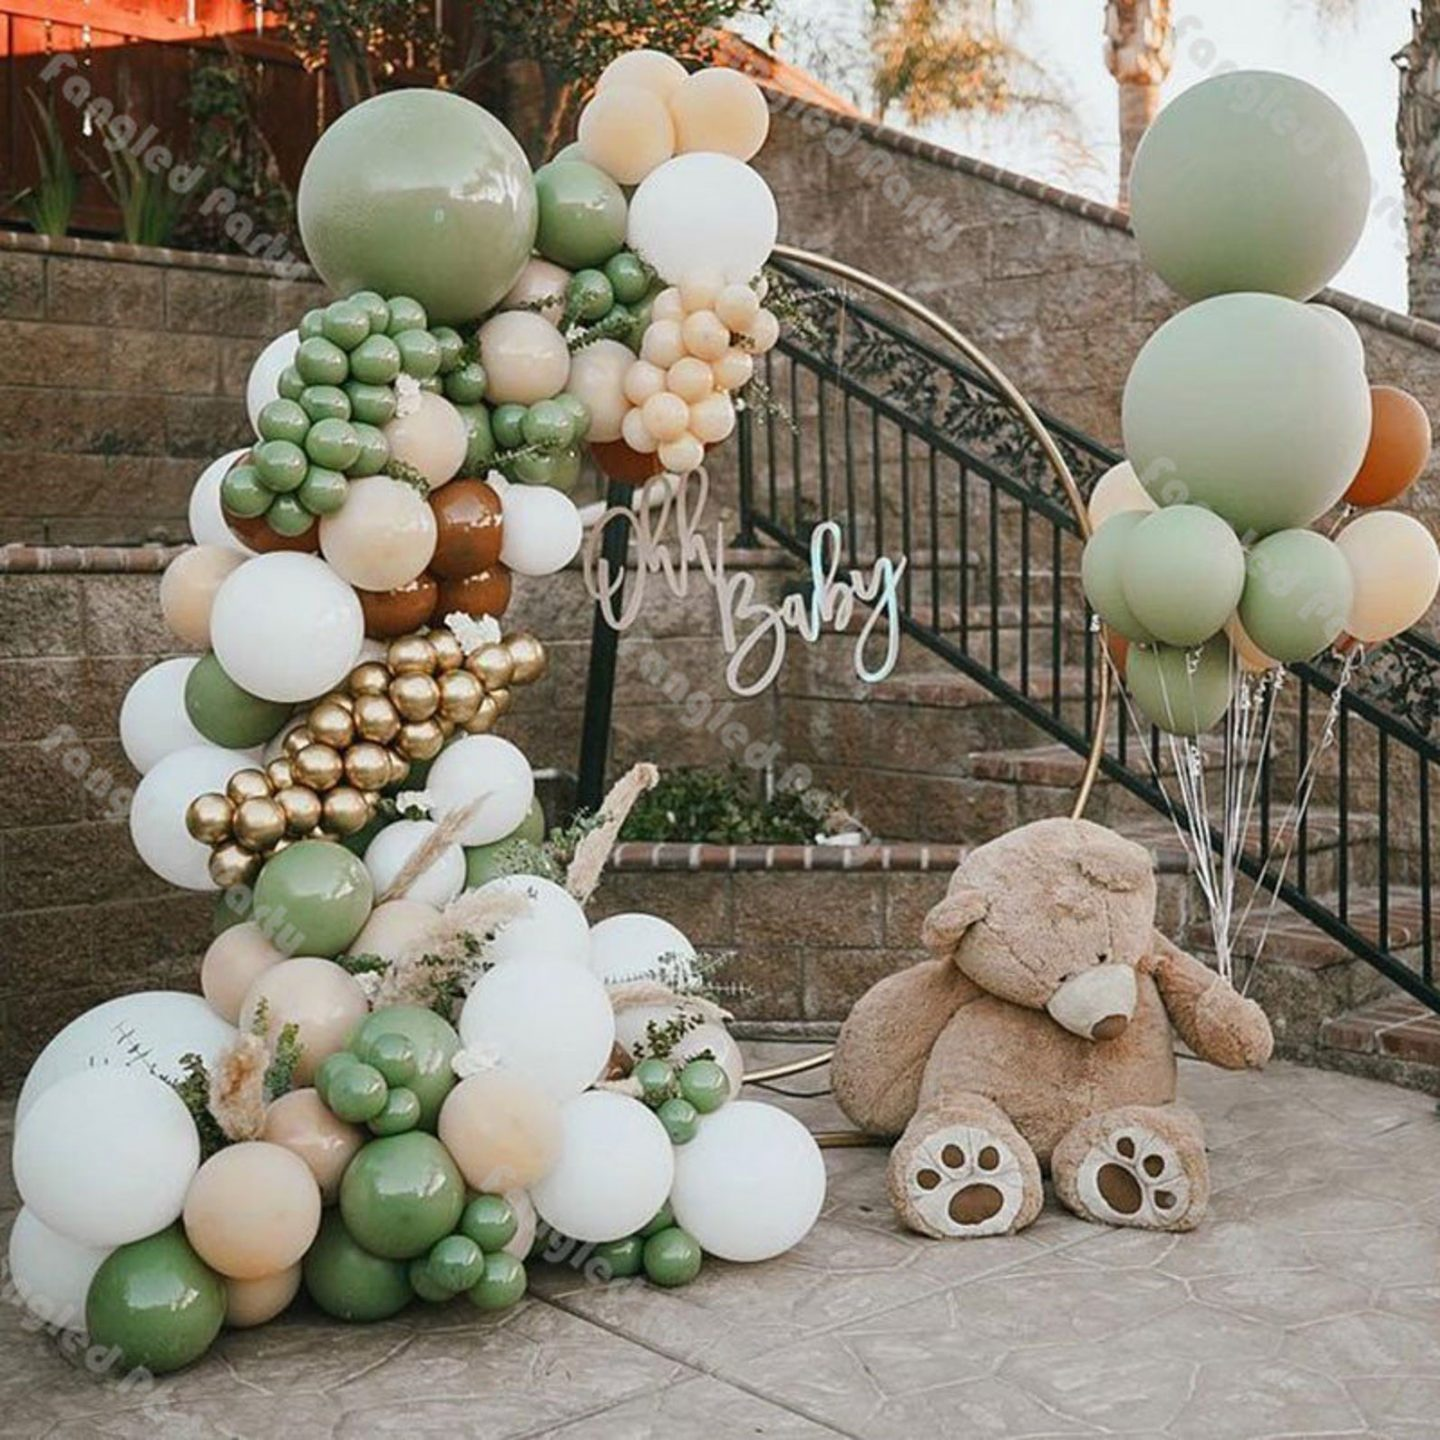 Green, white and gold baby shower balloon garland arch with teddy bear